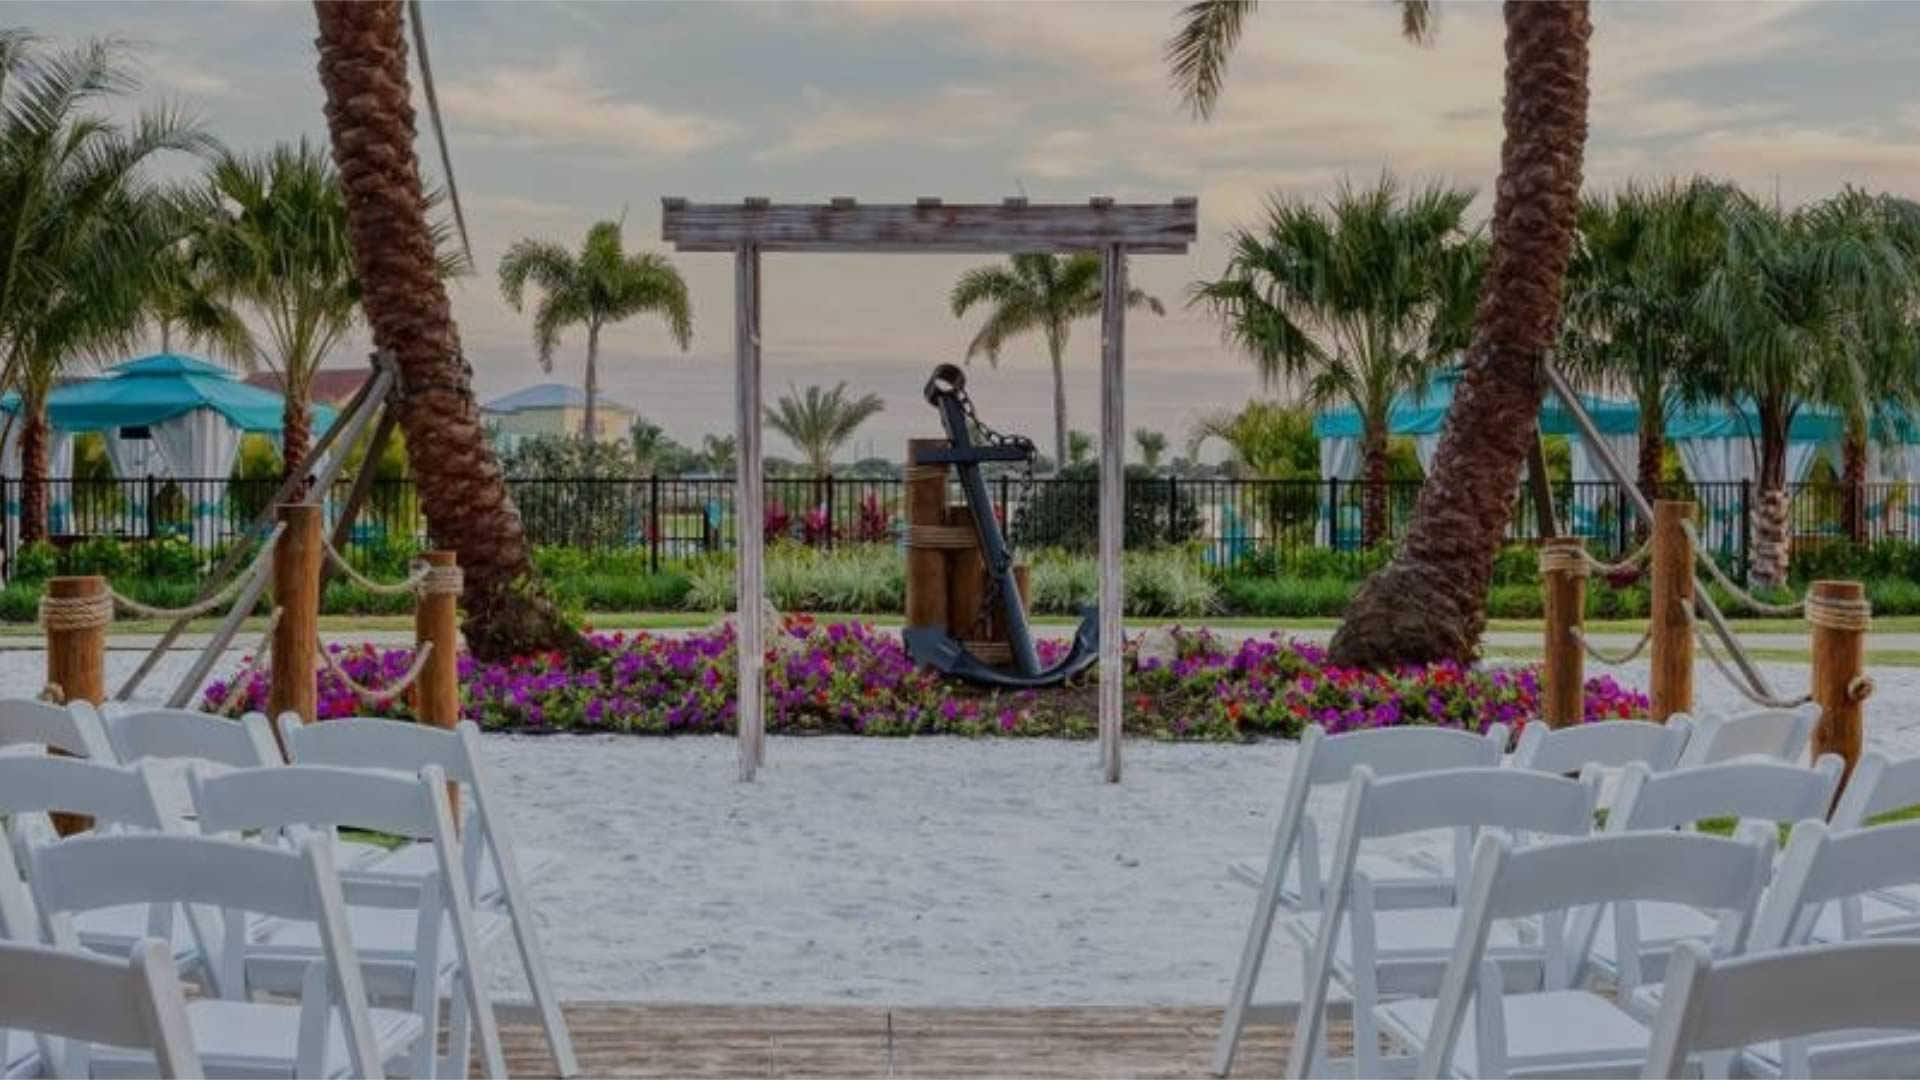 Margaritaville Resort Orlando 1 - Sensational Ceremonies